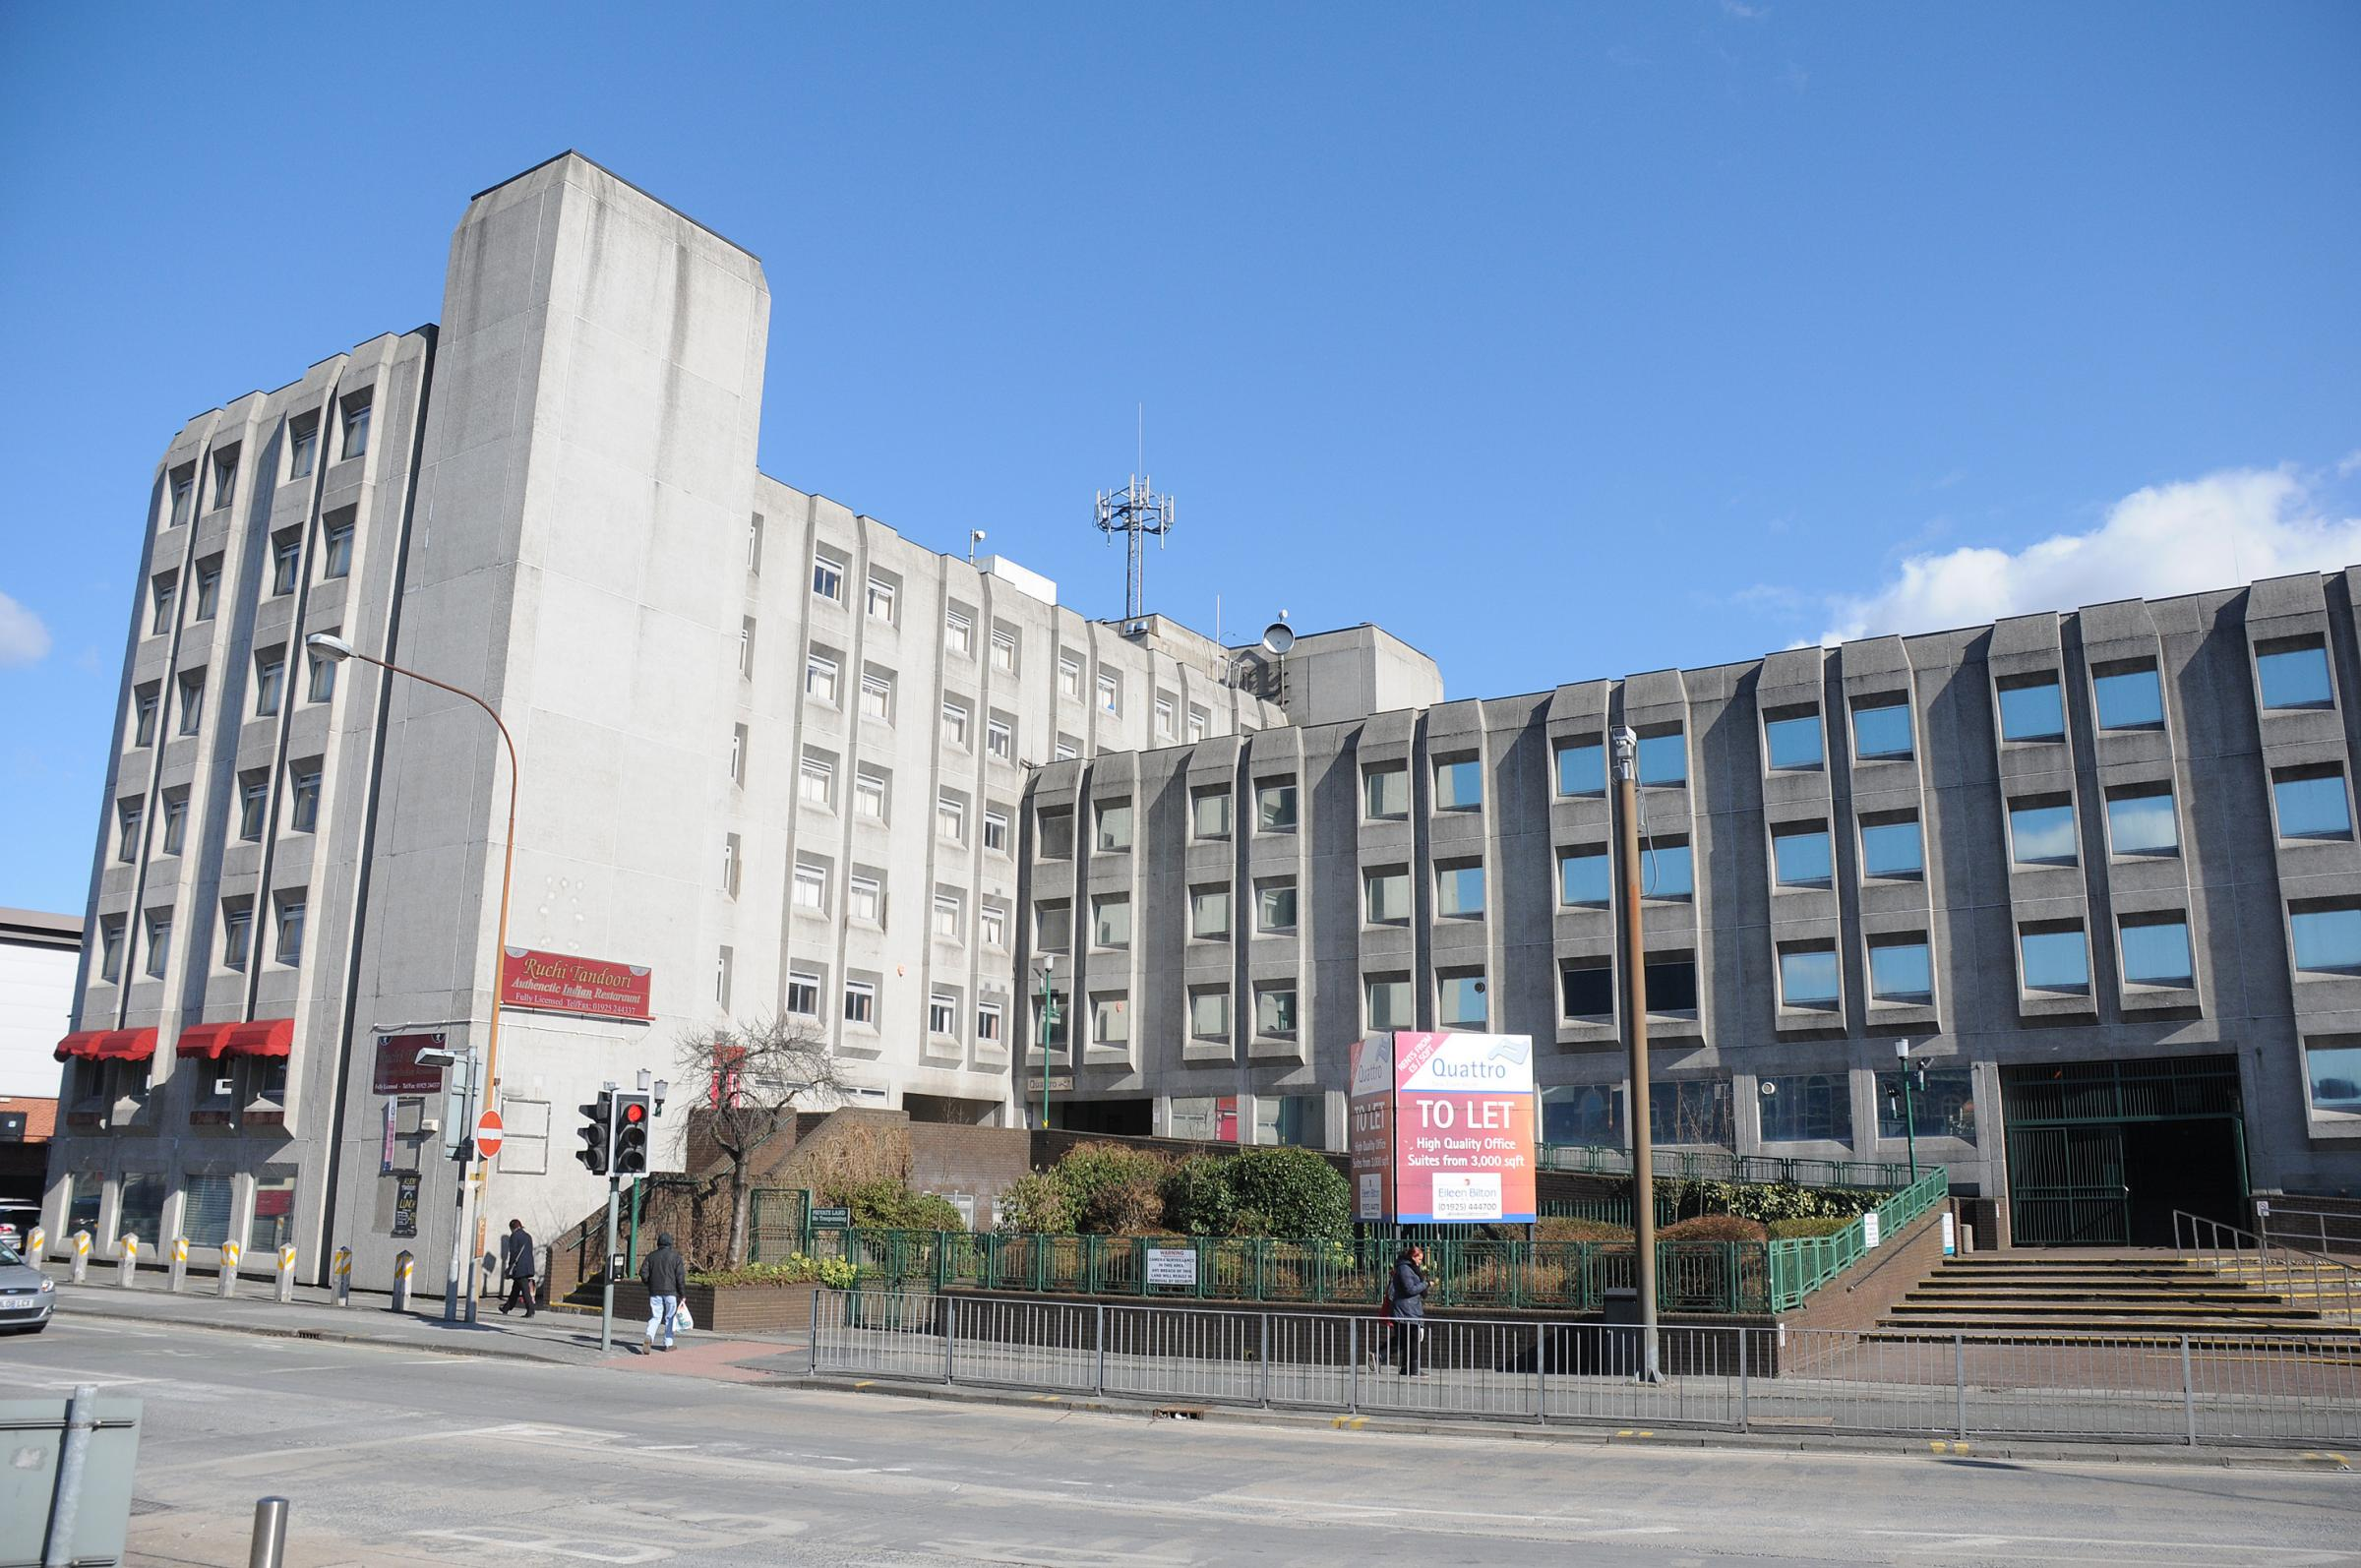 Demolition planned for New Town House building